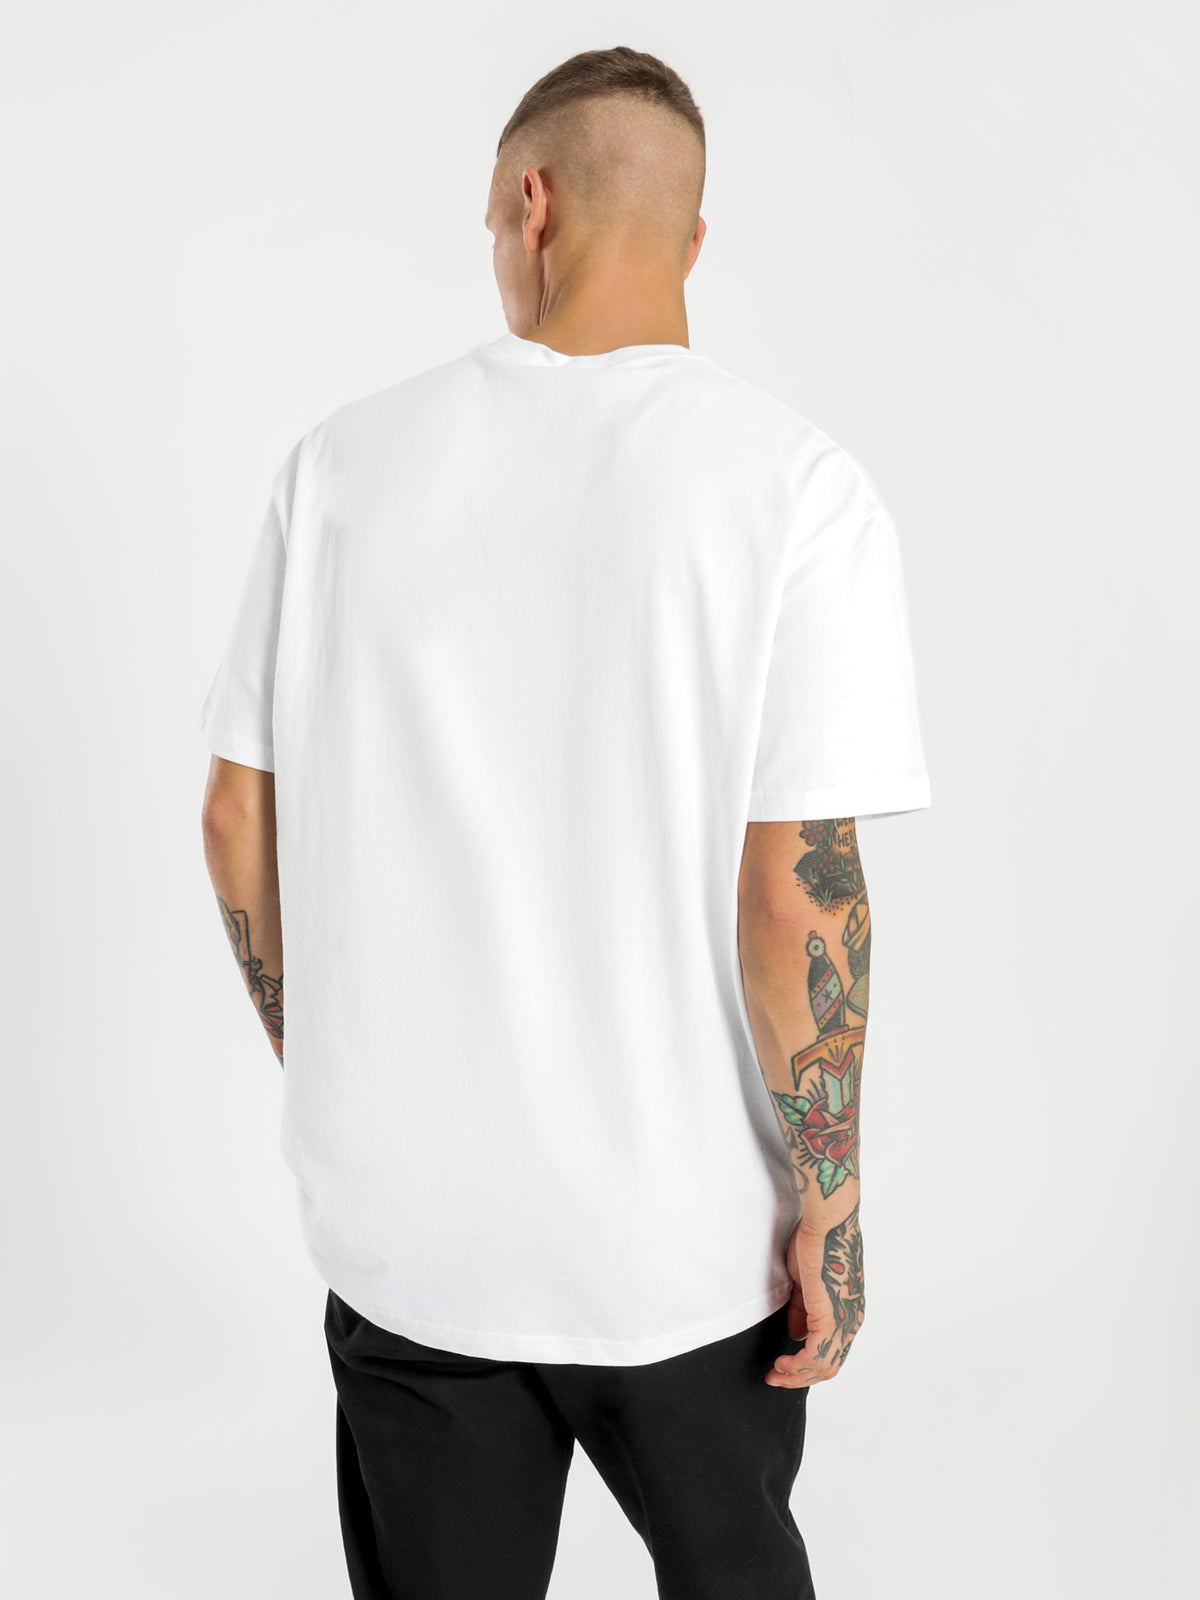 Solid Tour Short Sleeve T-Shirt in White & Blue